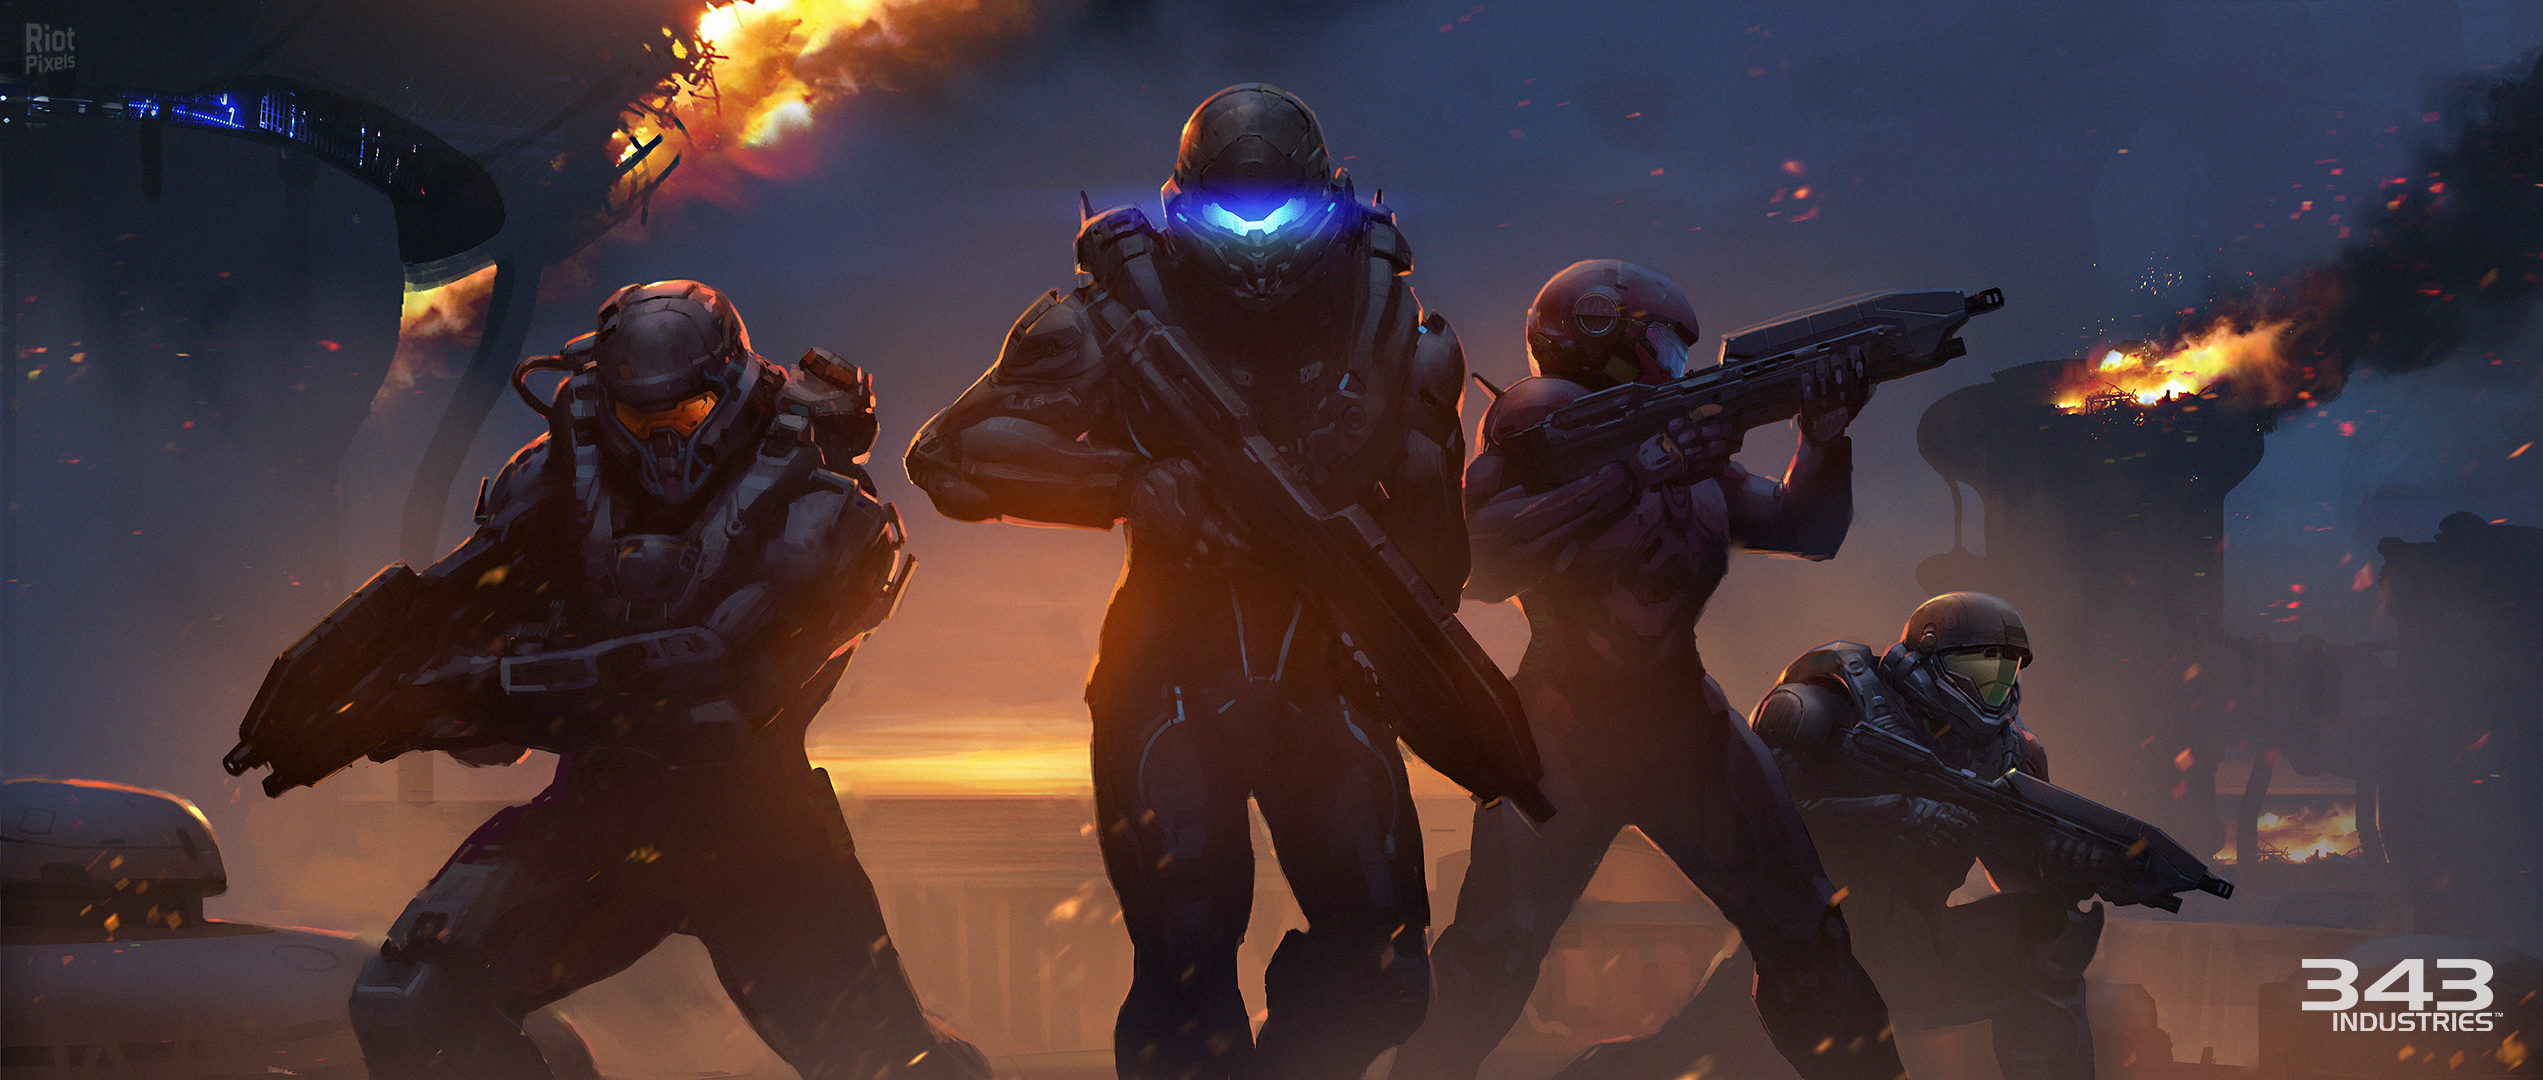 Halo 5 HD Wallpapers Download 2543x1080